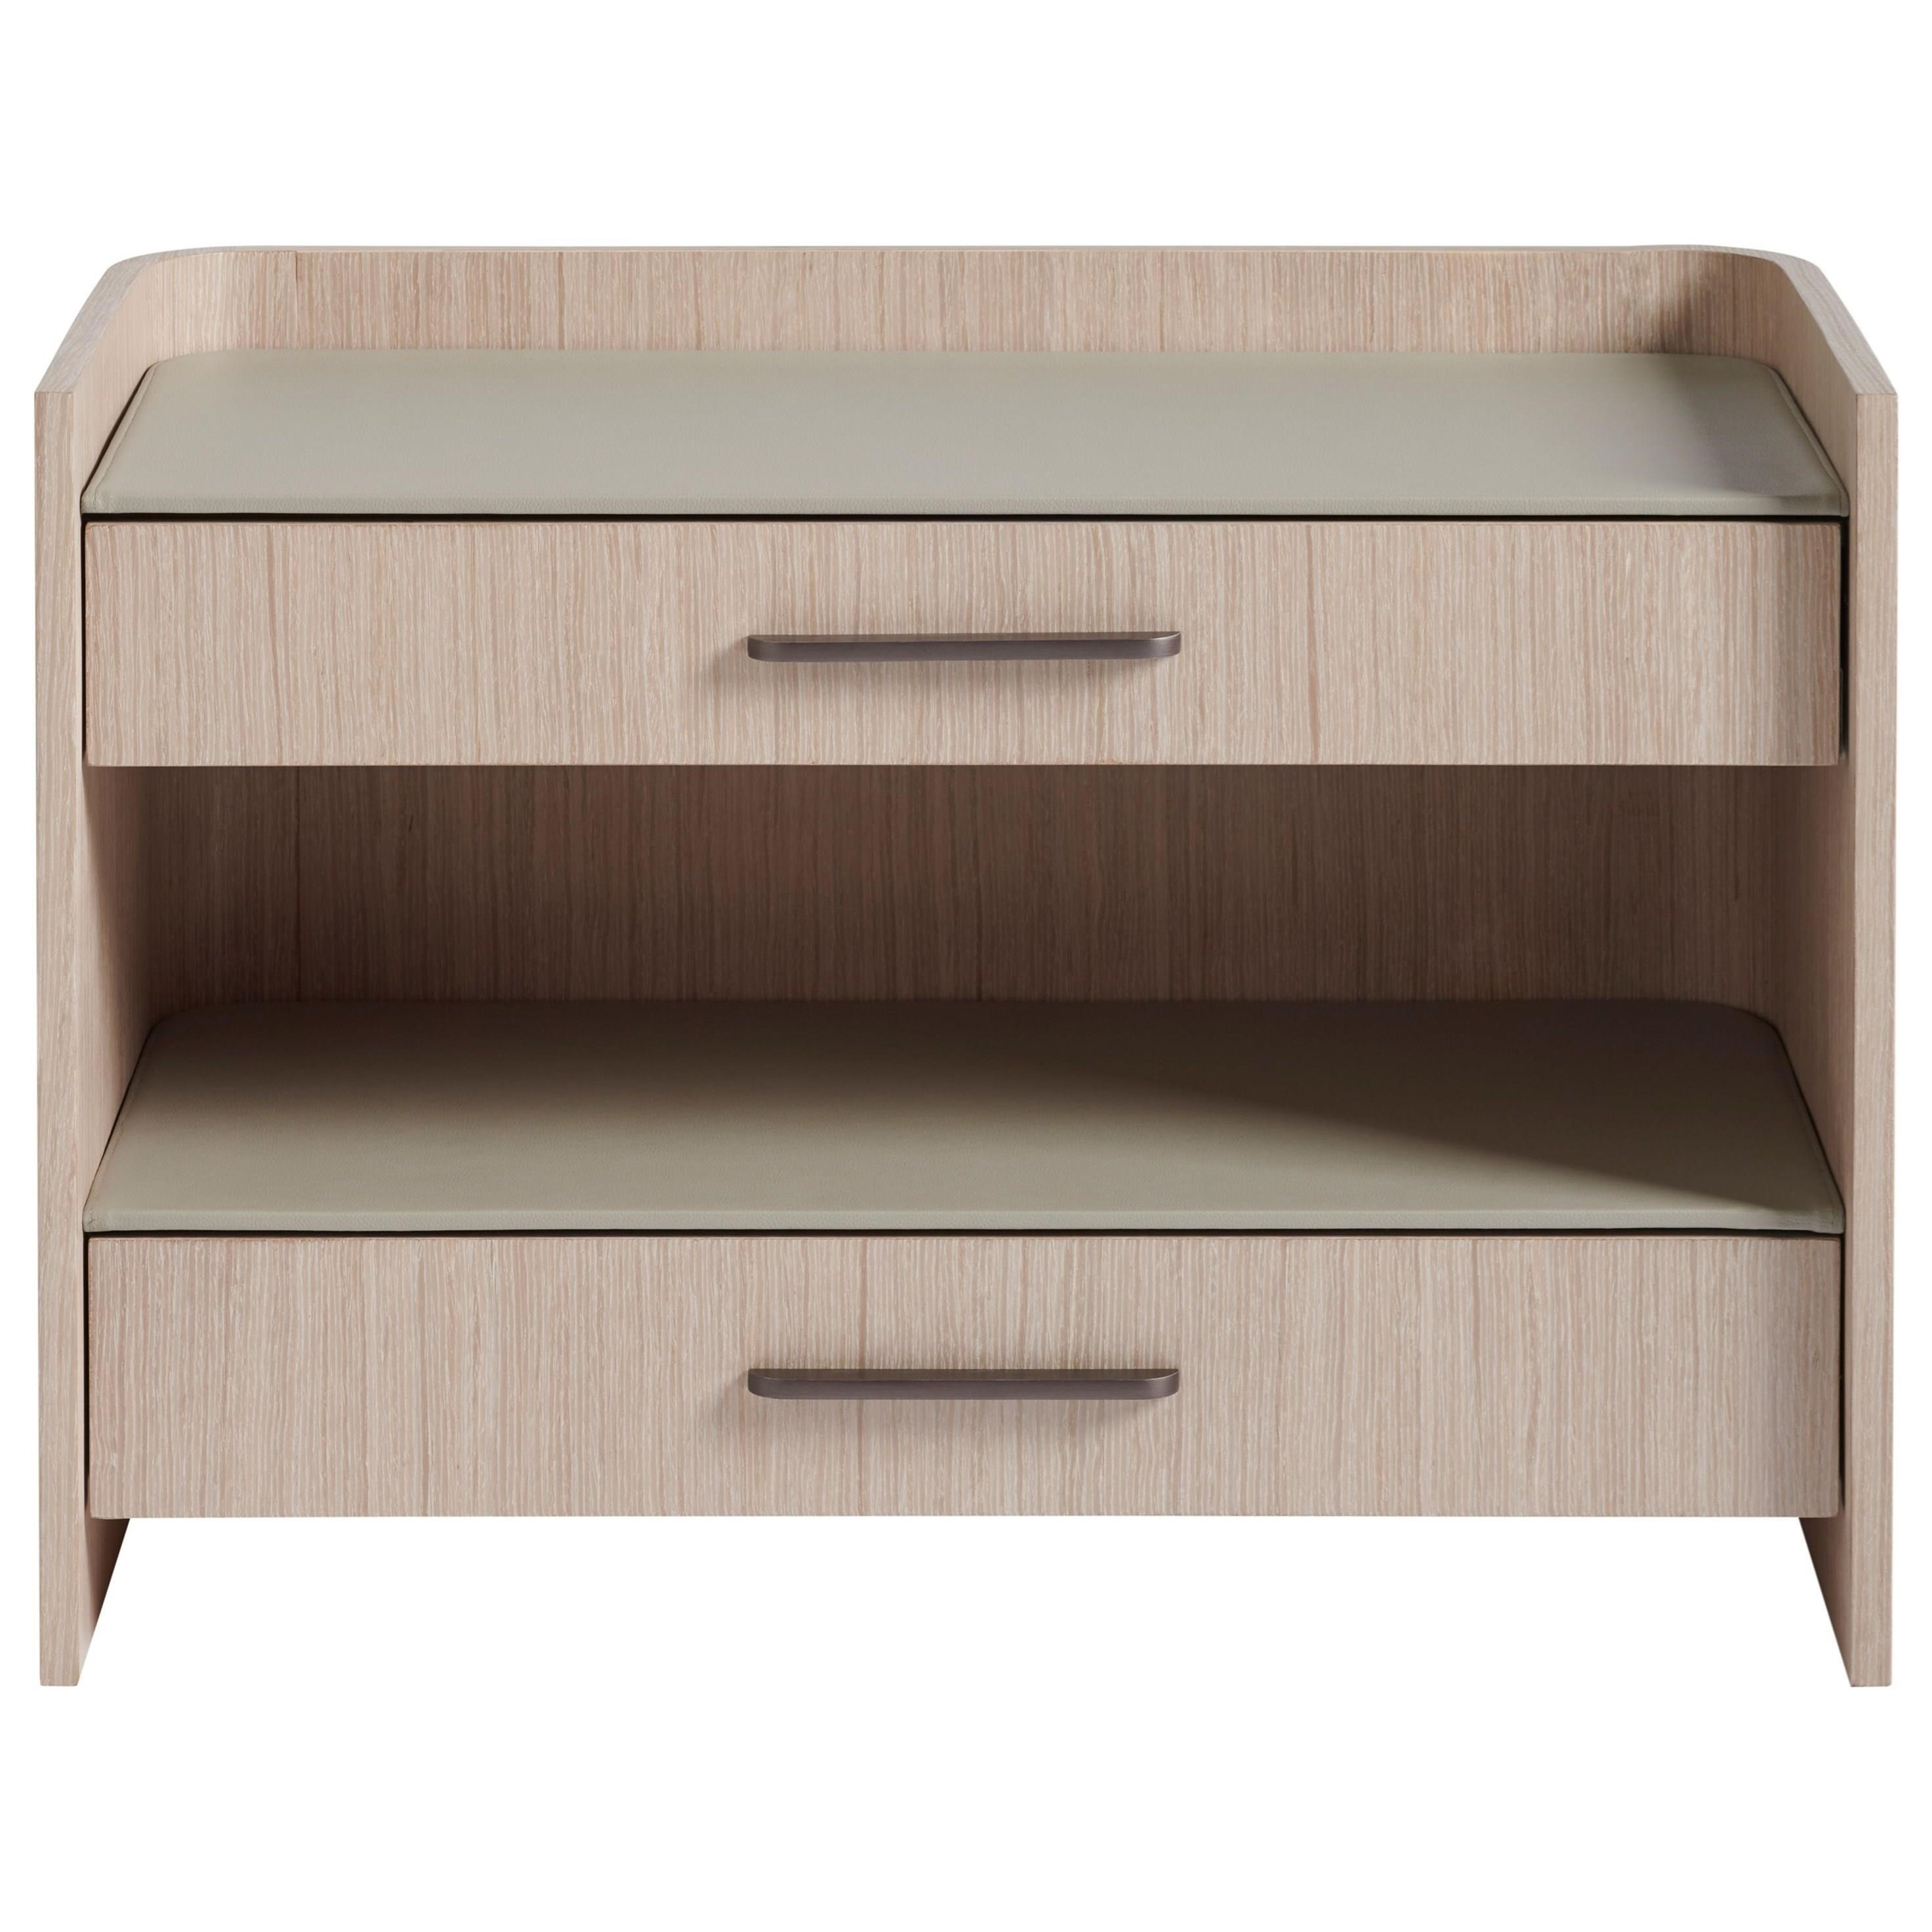 Universal Nina Magon 941 Glam Contemporary 2 Drawer Nightstand With Open Shelf Lindy S Furniture Company Nightstands